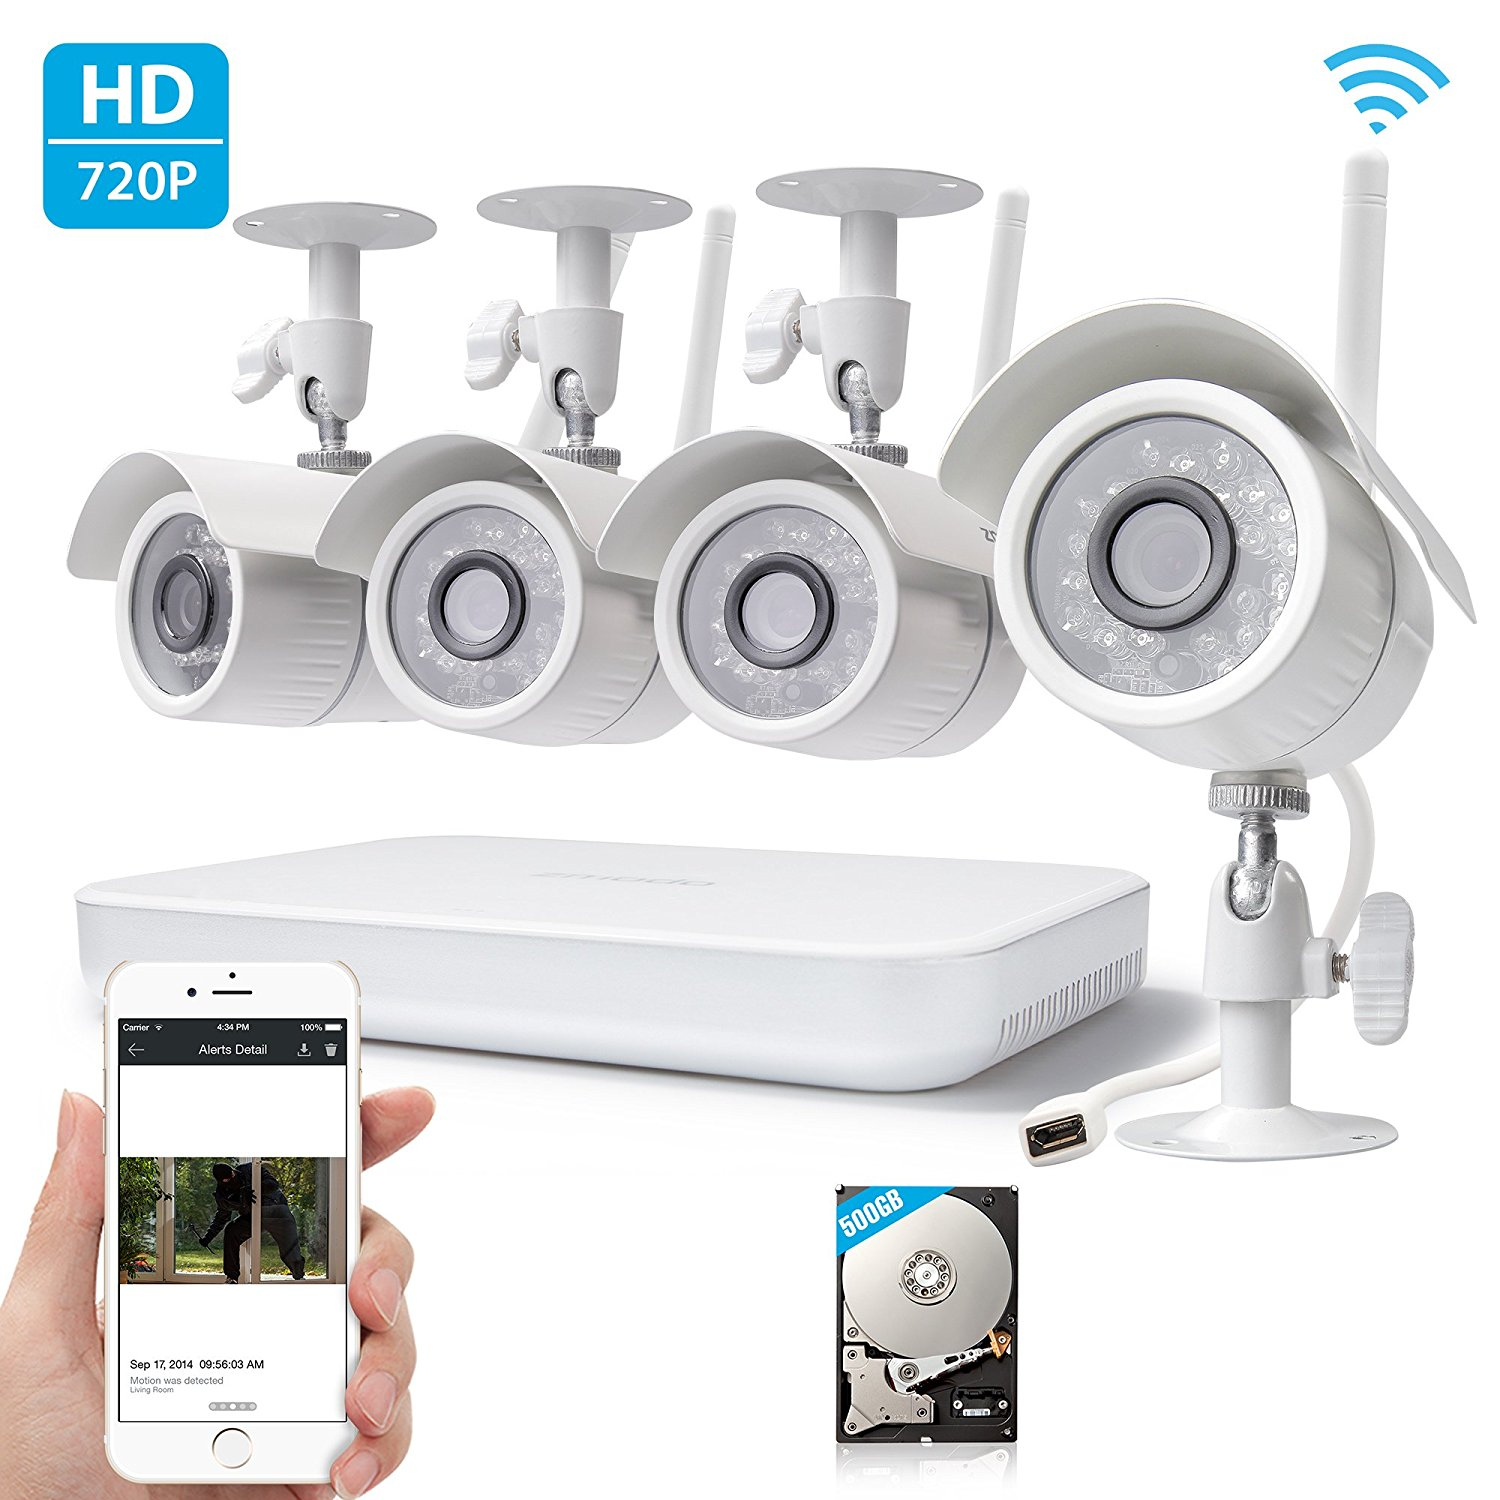 Zmodo 720p High Definition Wireless WiFi Smart Outdoor Indoor Home Video Security Camera System